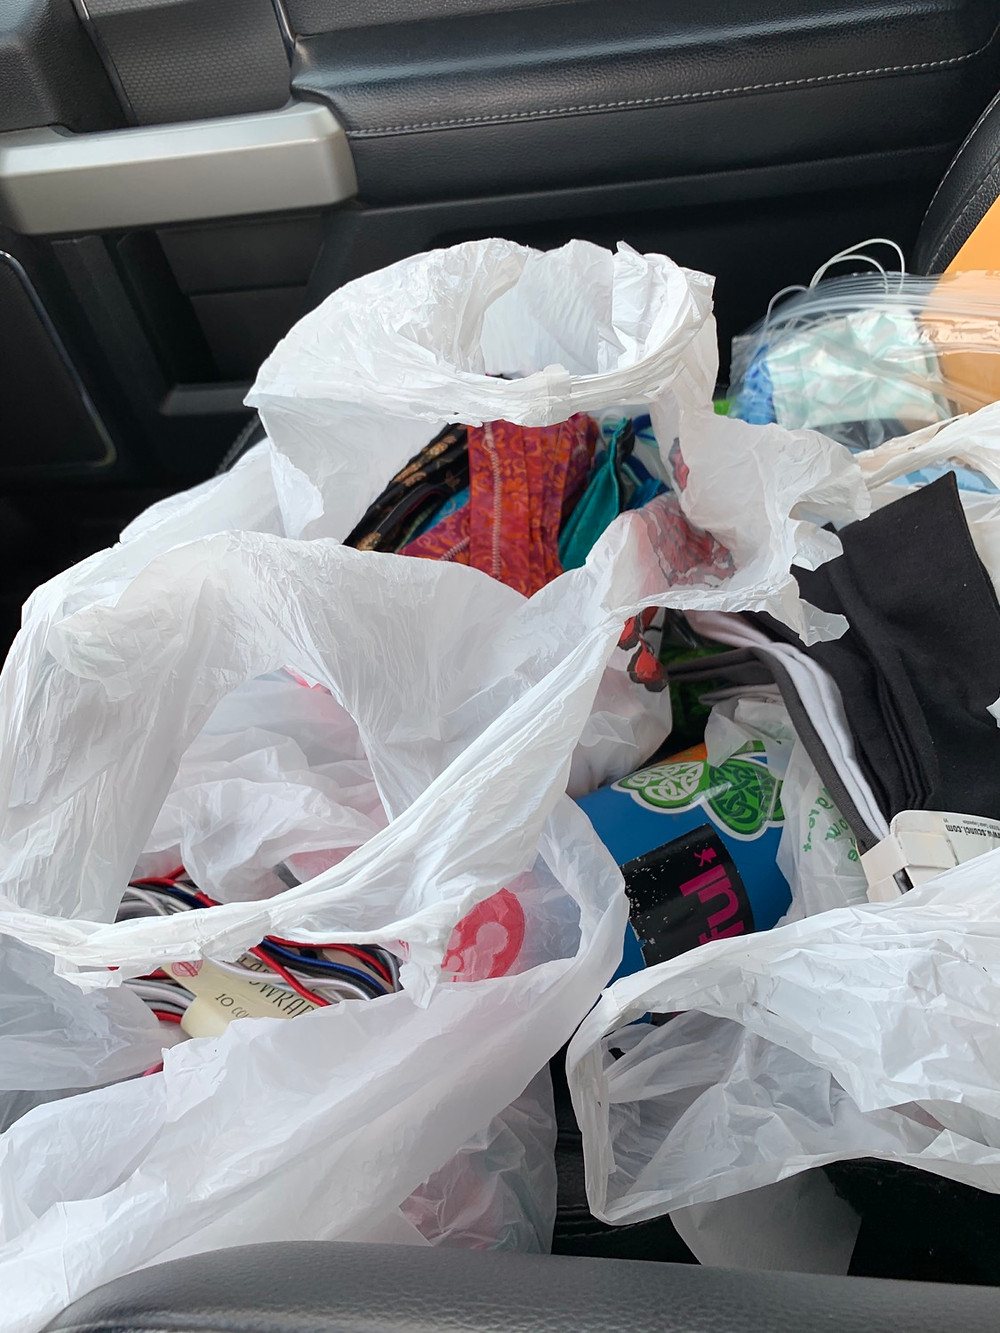 The bags filled with sewing supplies and finished masks that are distributed through an open window in my pickup